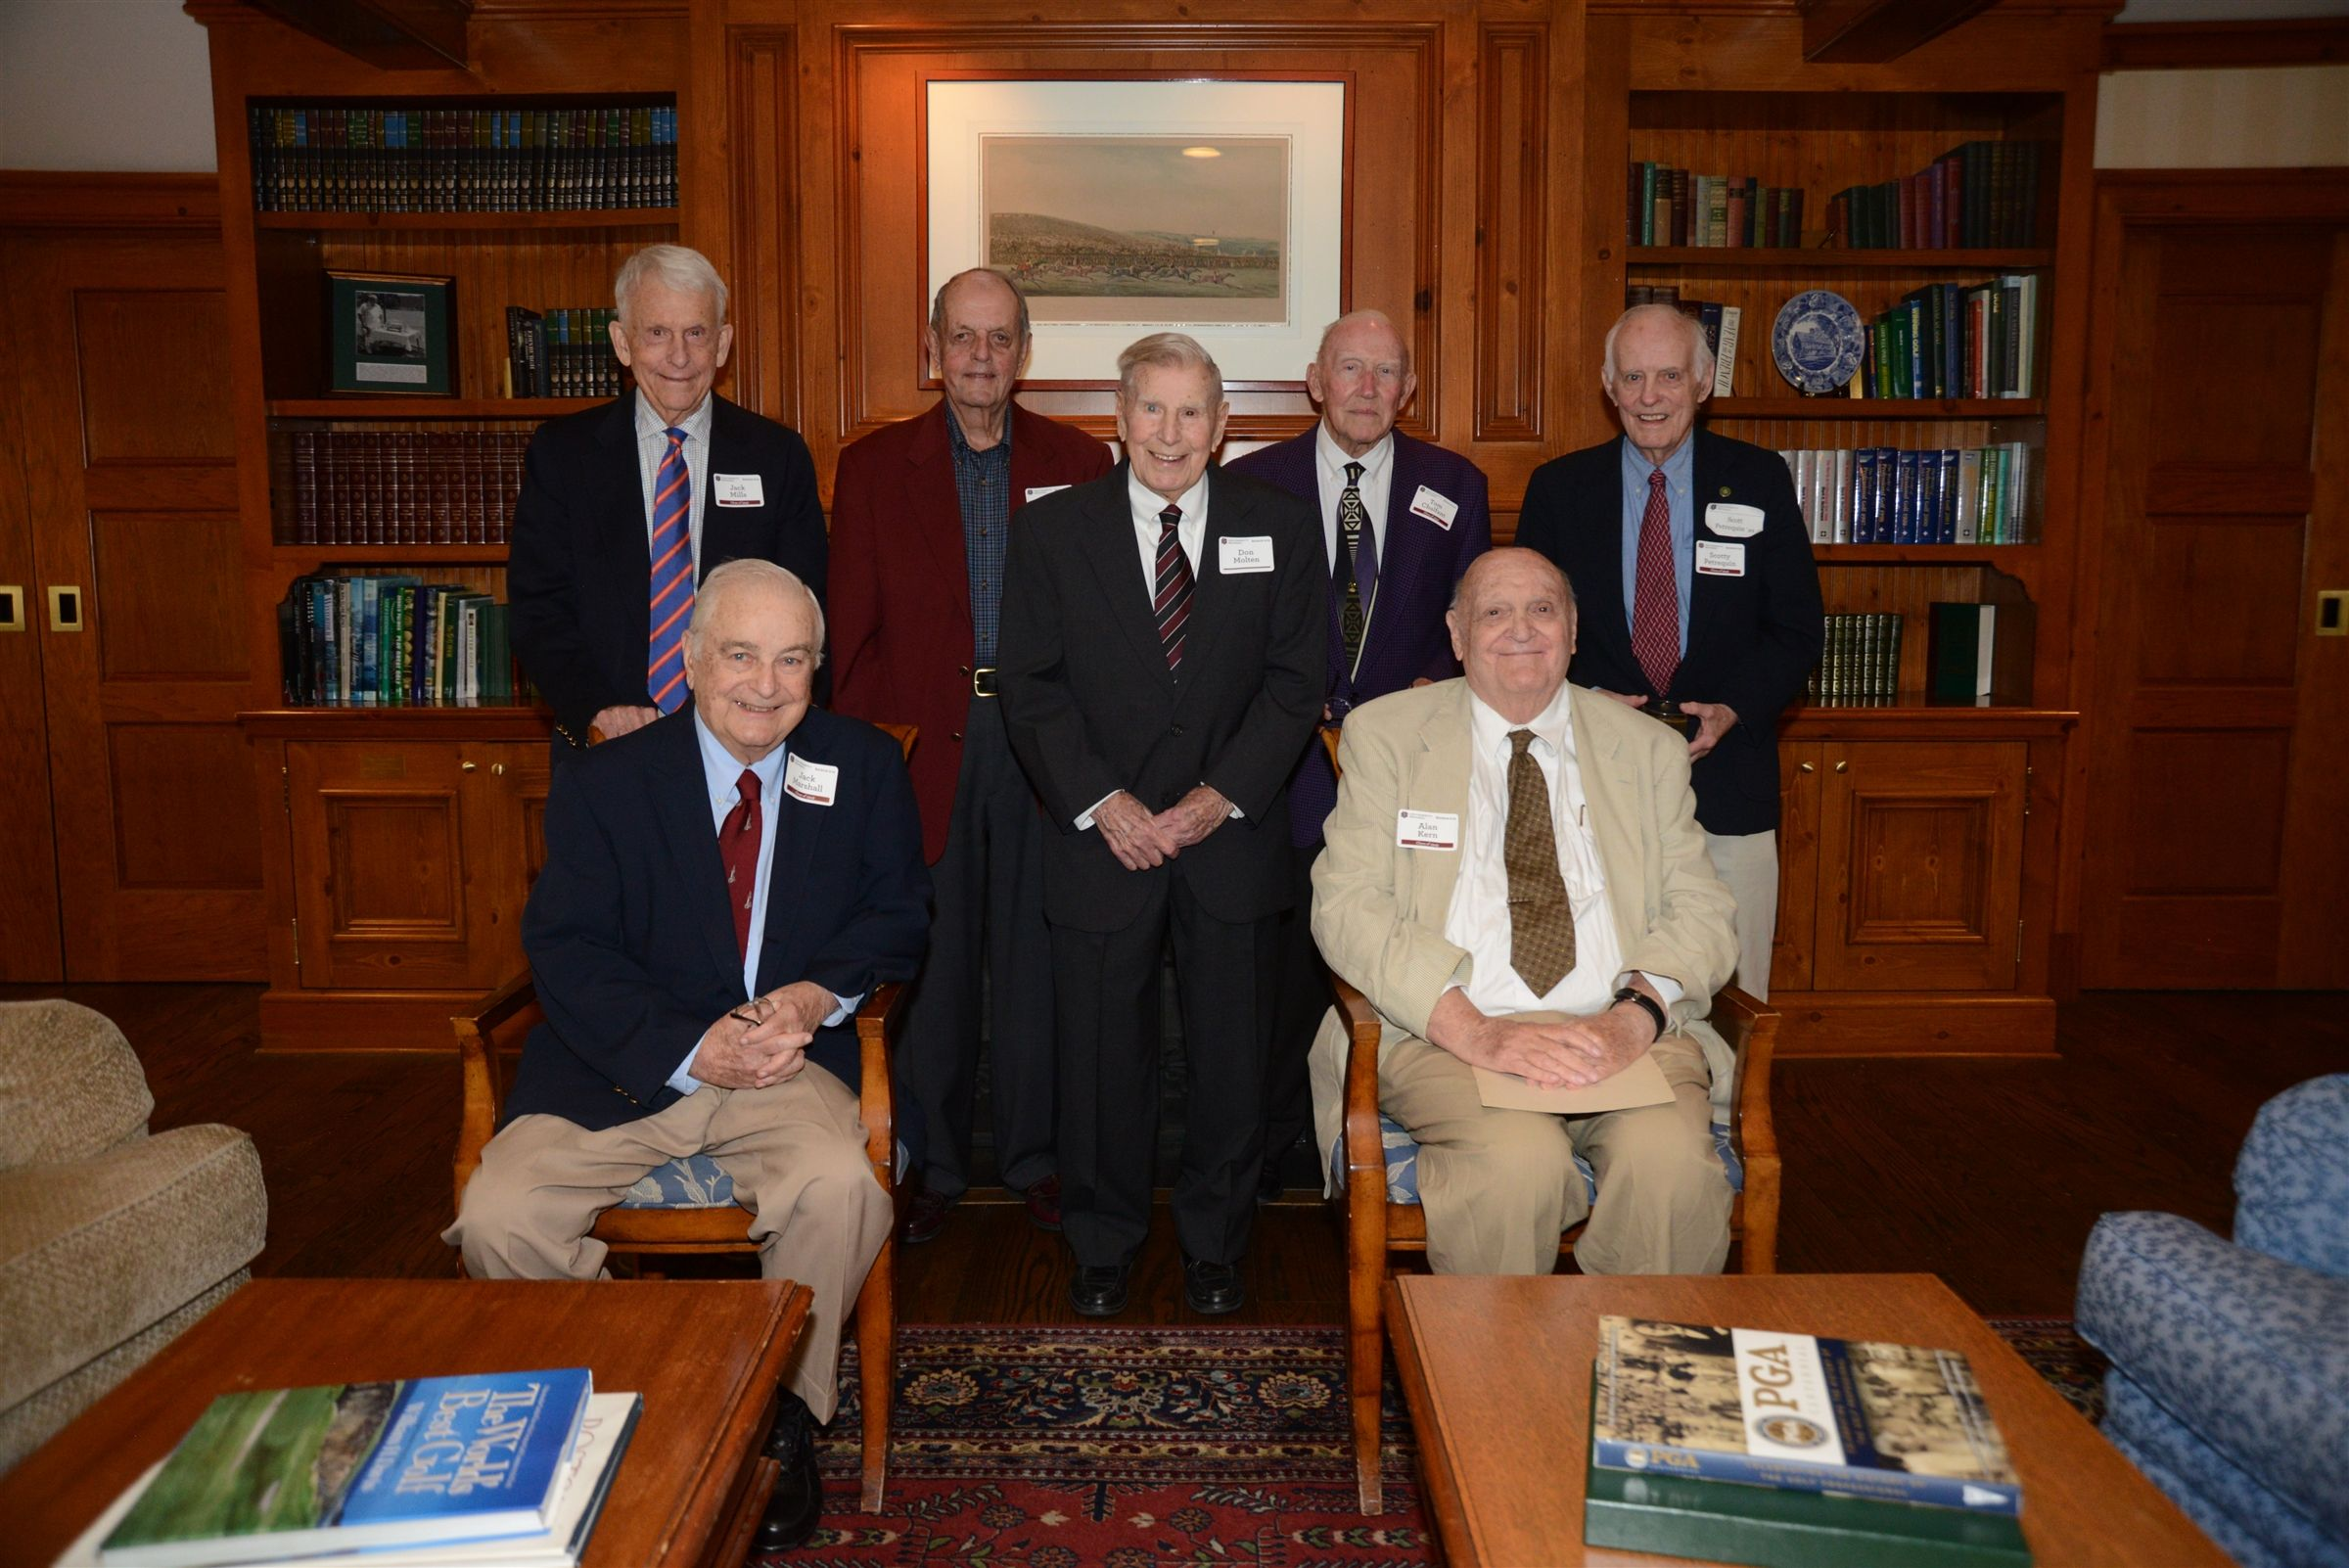 The Class of '49 celebrated their 70th Reunion at The Country Club with special guest Don Molten Sr.